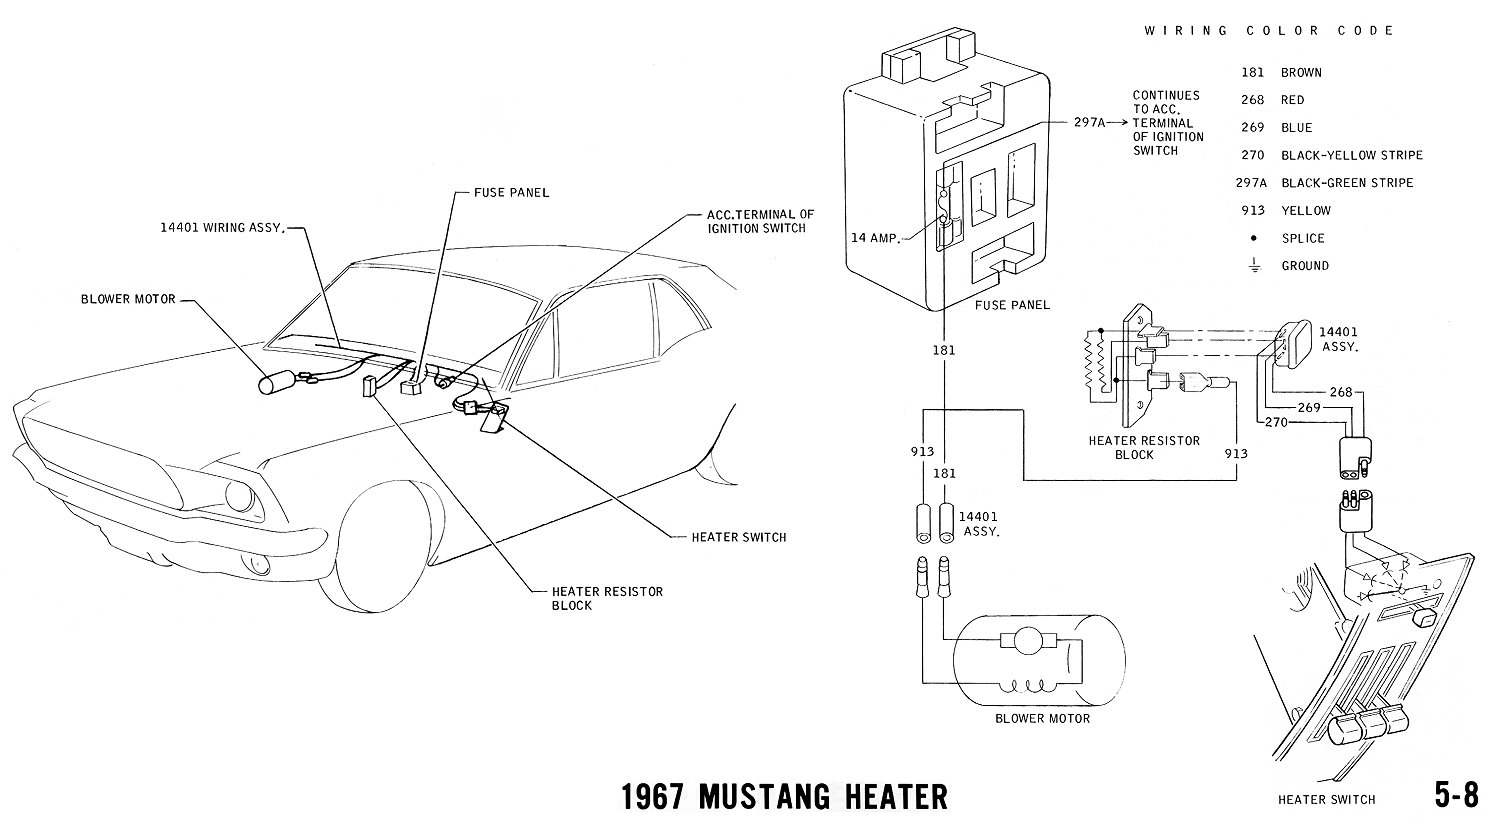 67 Mustang Windshield Wiper Wiring Diagram Will Be A Thing Honda Motor 1967 And Vacuum Diagrams Average Joe Restoration Rh Averagejoerestoration Com Switch